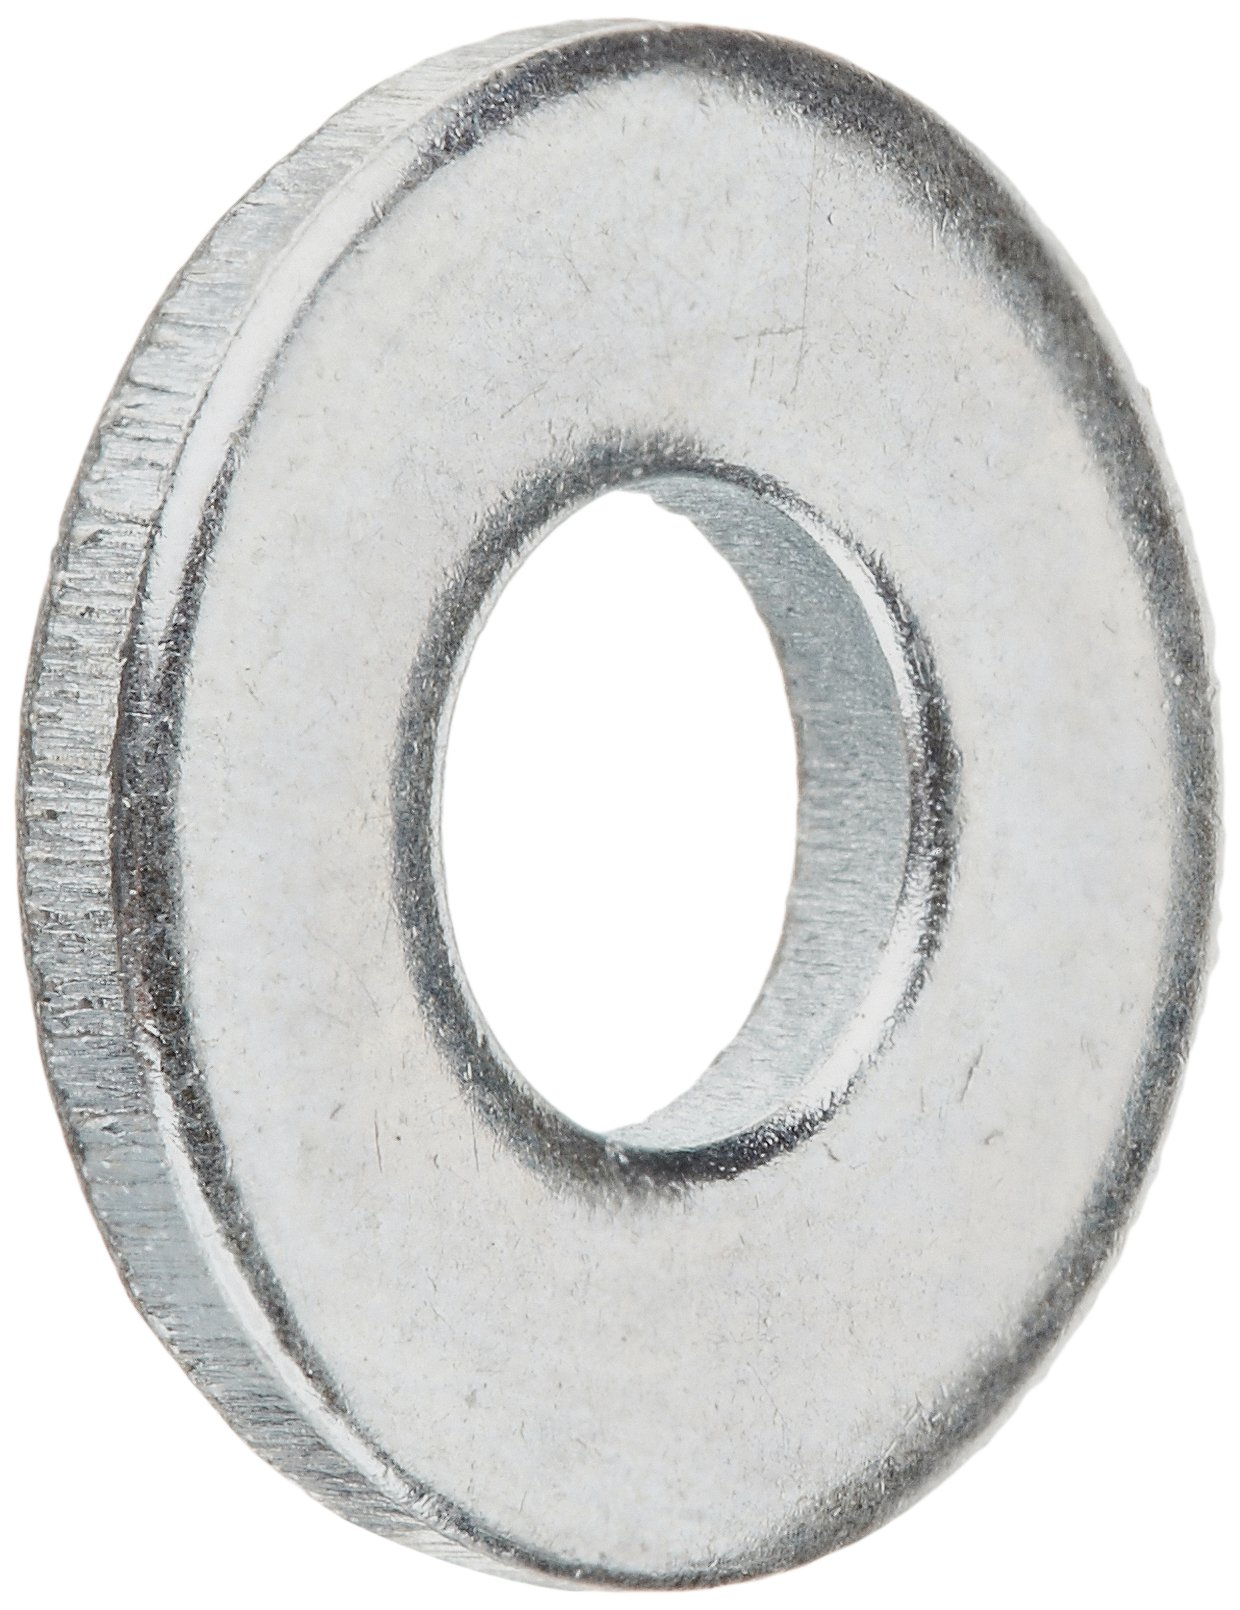 1//8 ID 1//4 OD 0.032 Thick Pack of 100 Type B No Pack of 100 ASME B18.22.1 Zinc Plated Finish 0.032 Thick 1//4 OD Steel Flat Washer 1//8 ID 4 Screw Size Small Parts